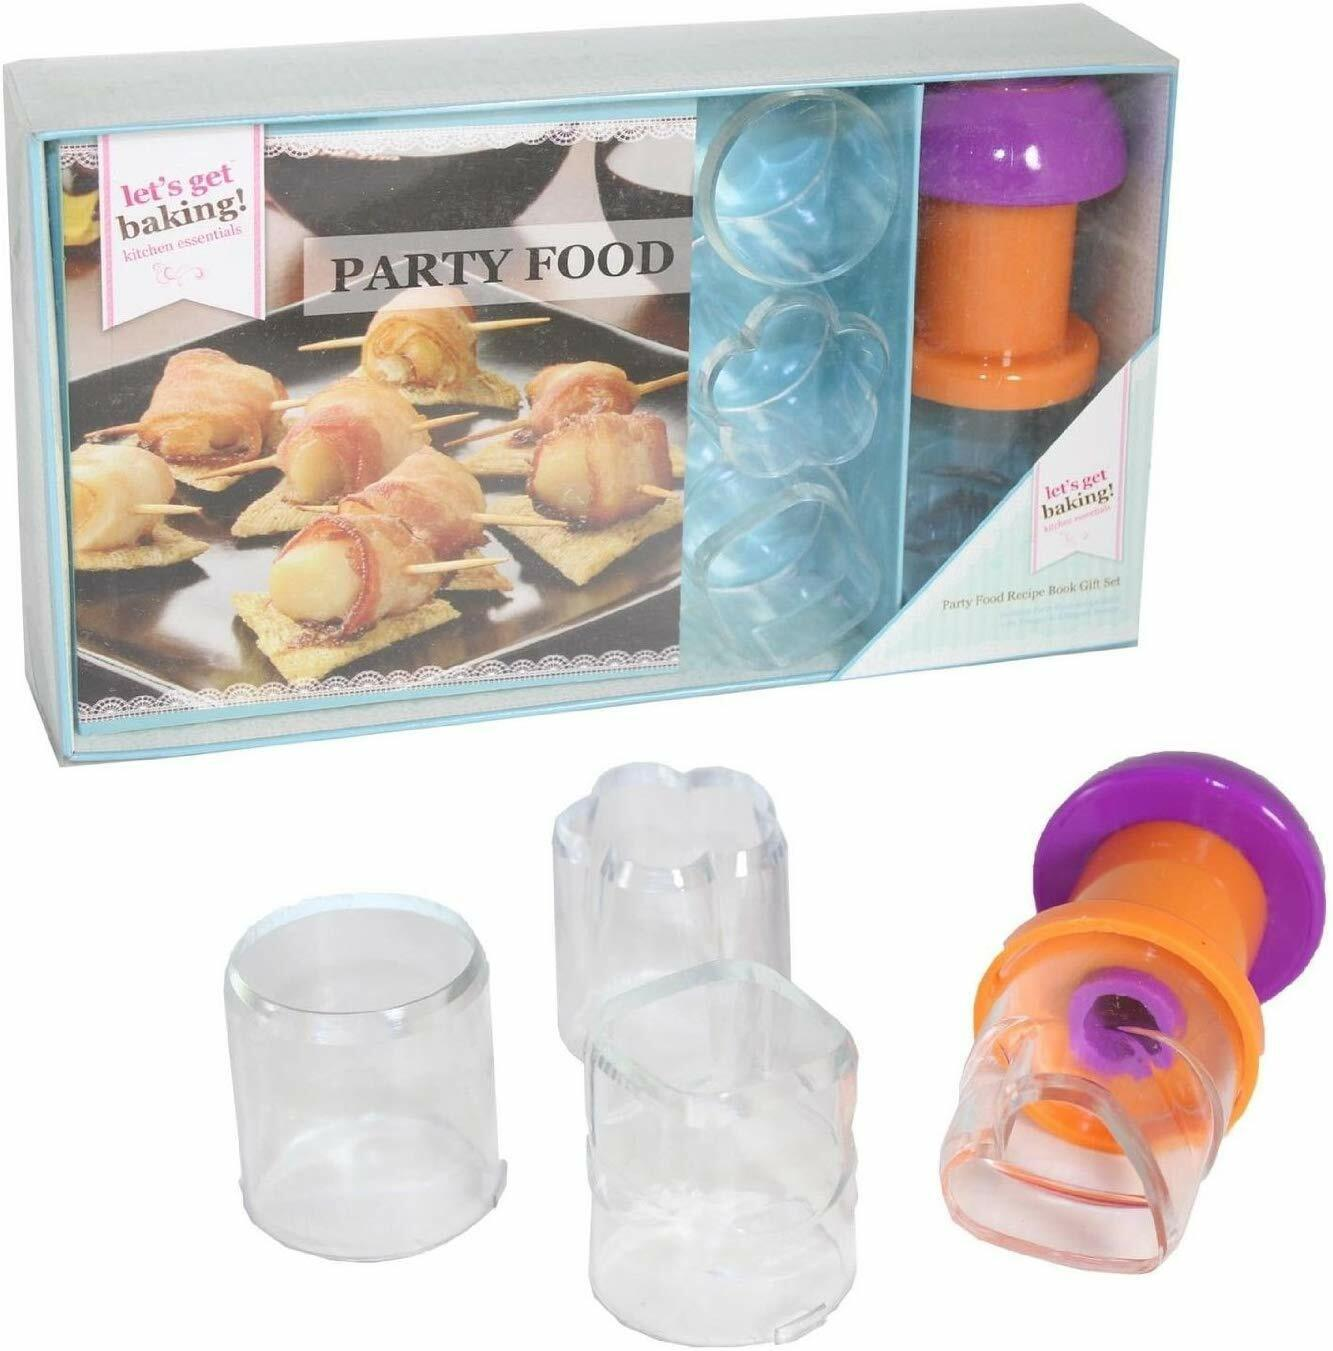 PMSGet Baking Party Food Book Gift Set in Gift Box